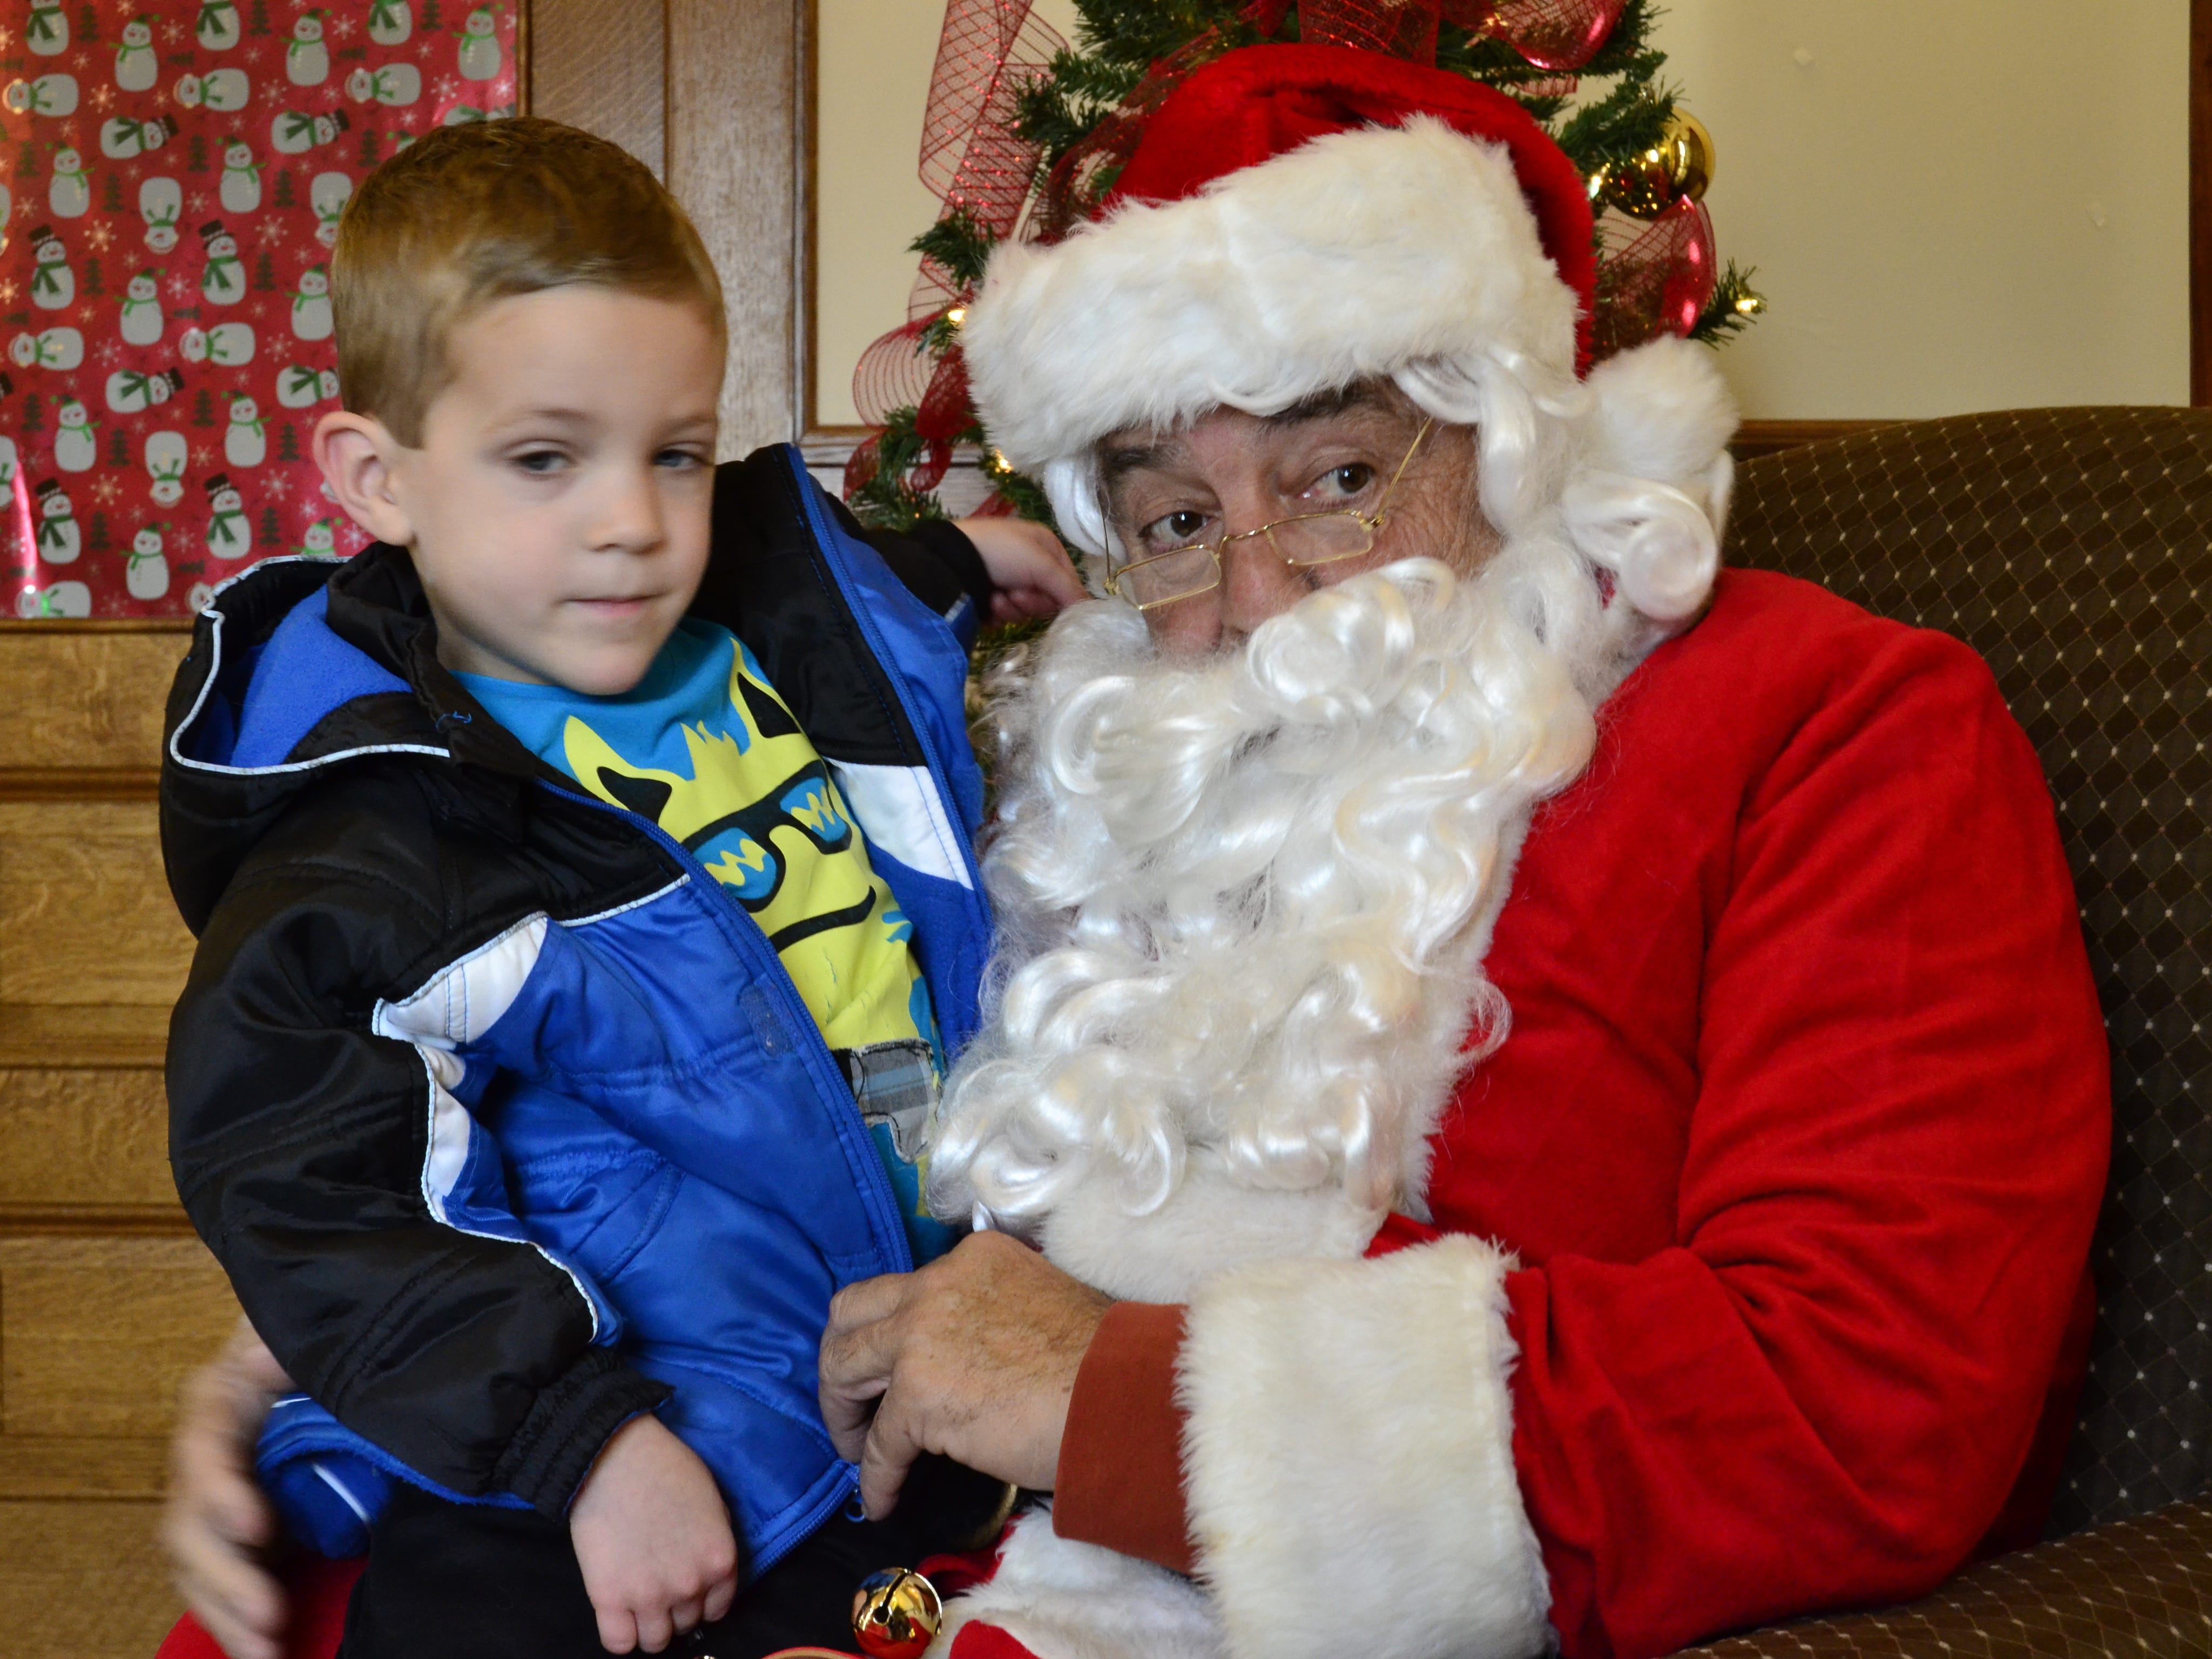 Joe Rombold, 4, from Endwell sits with Santa Sunday at the Vestal Coal House's third annual Christmas event for kids in 2015.